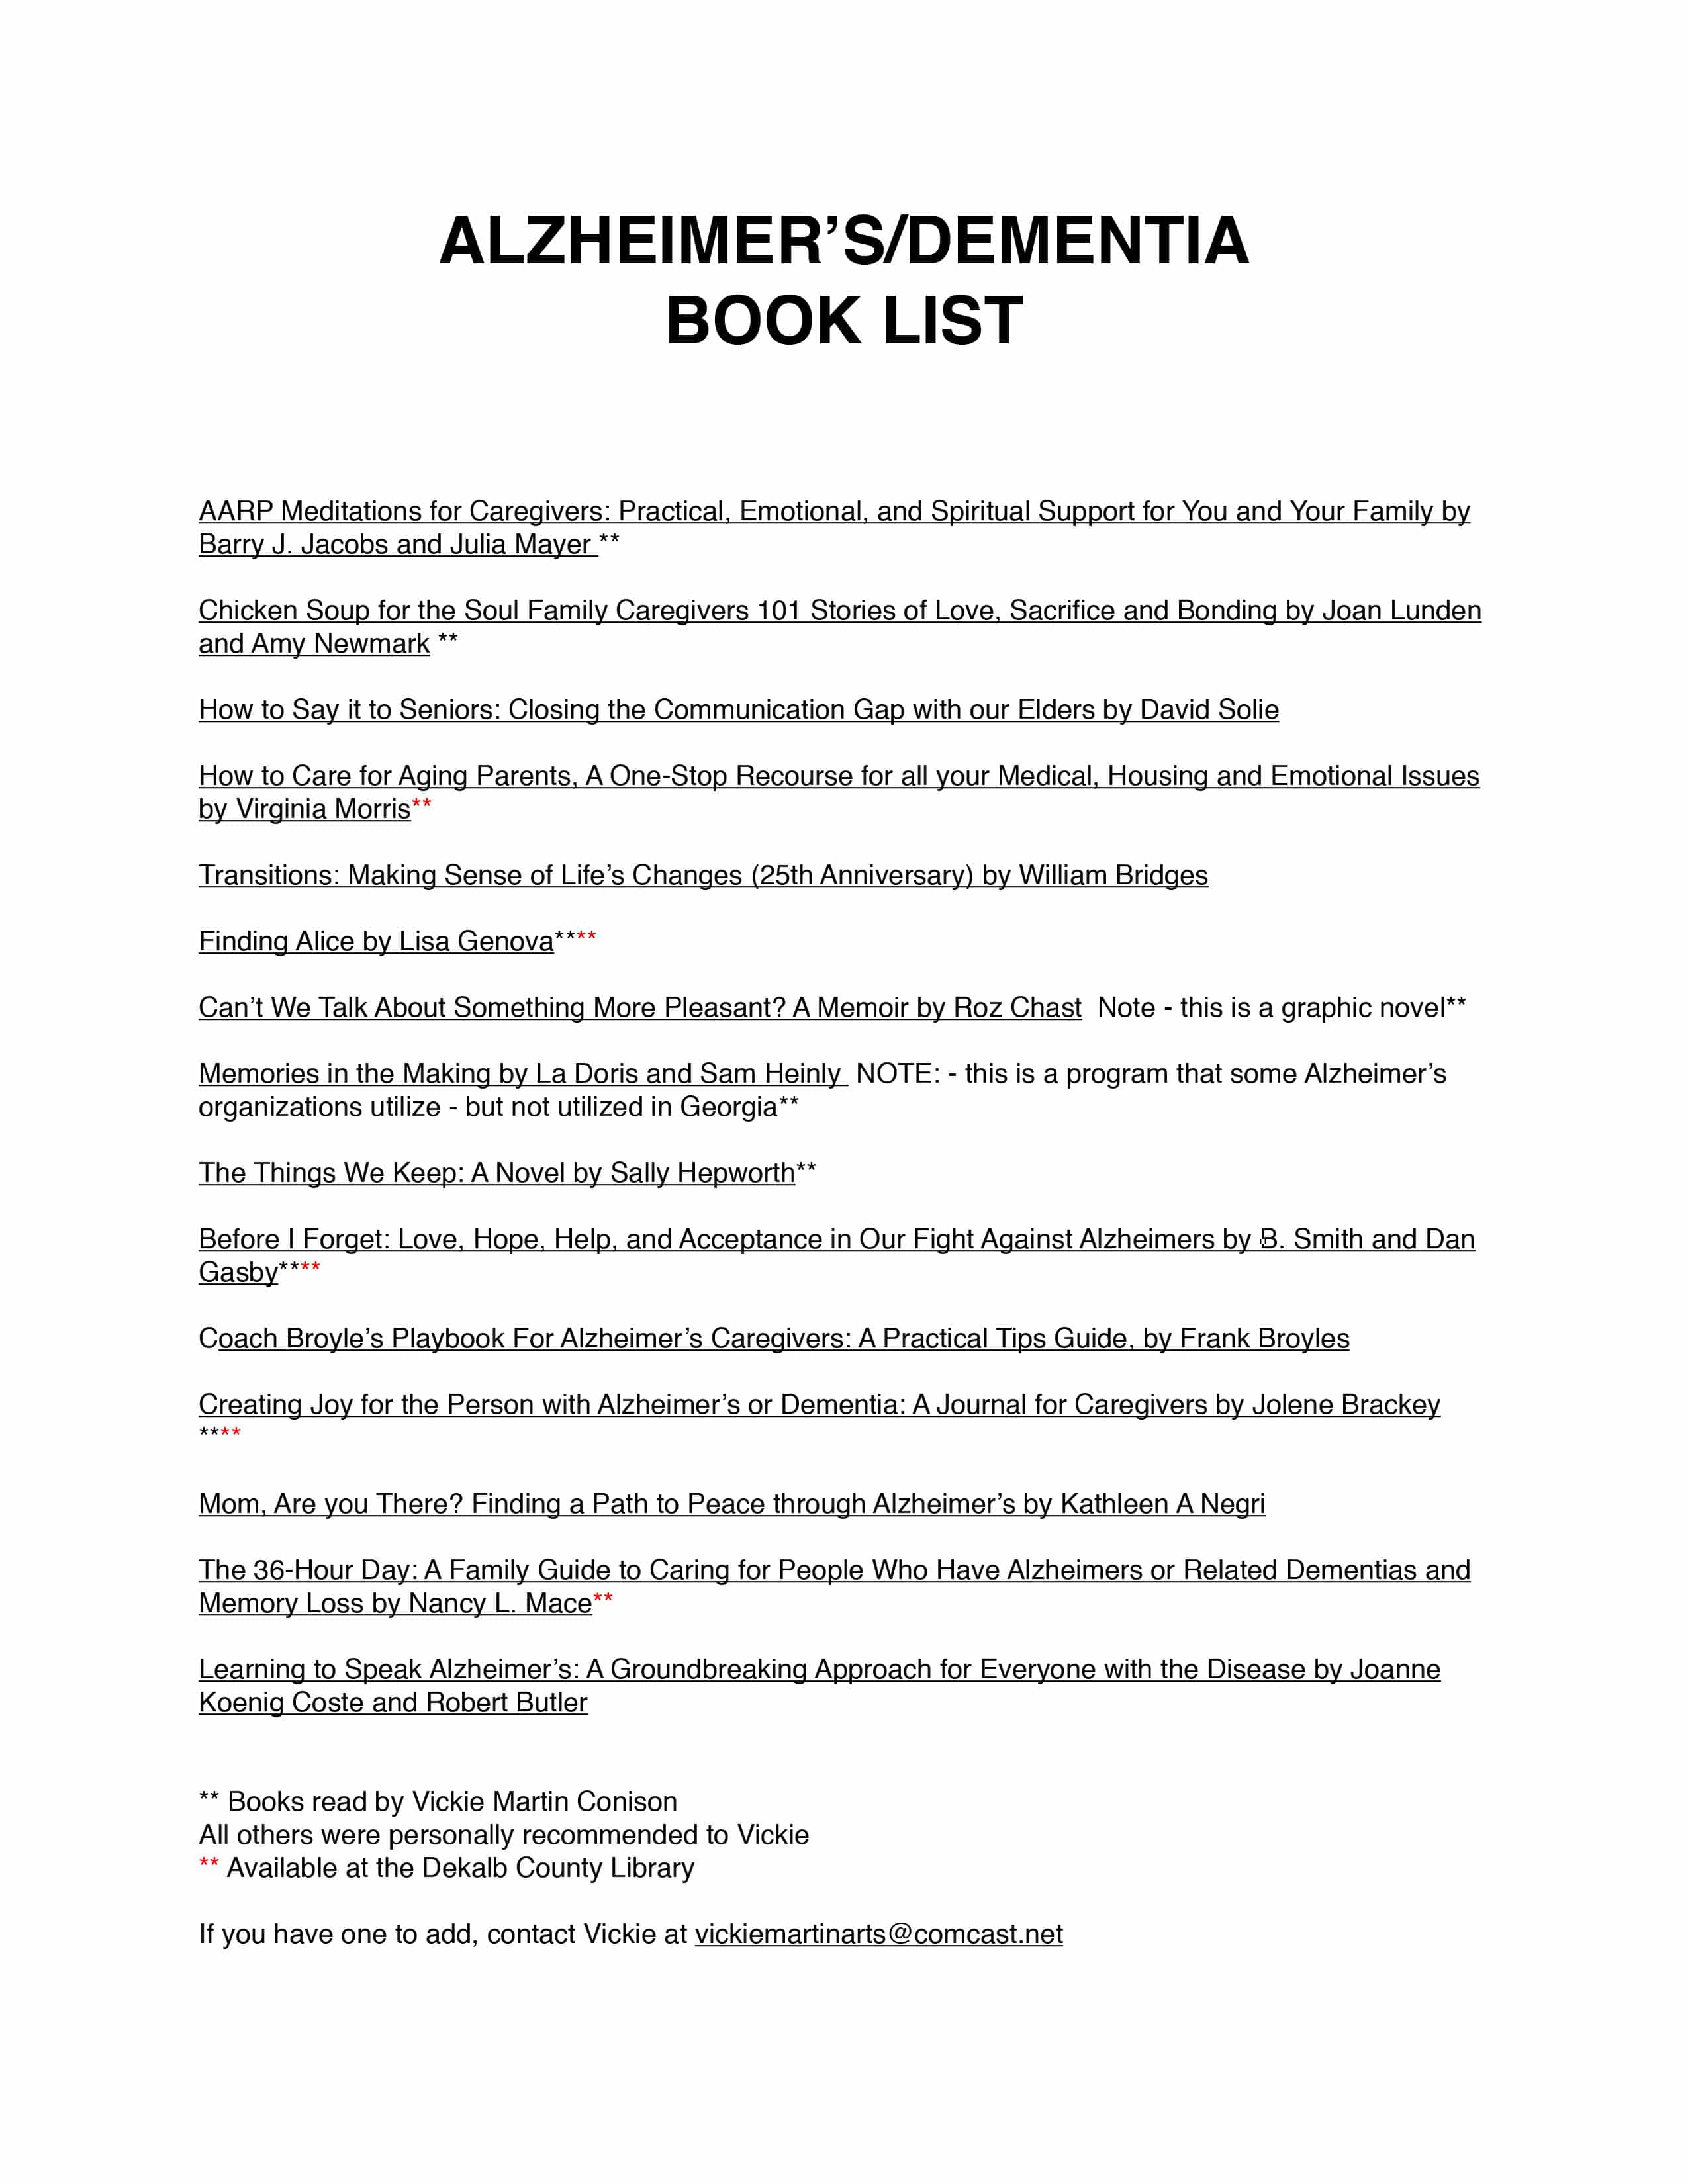 I Am In An Alzheimers Support Group, So I Put Together A Reading List For  Them